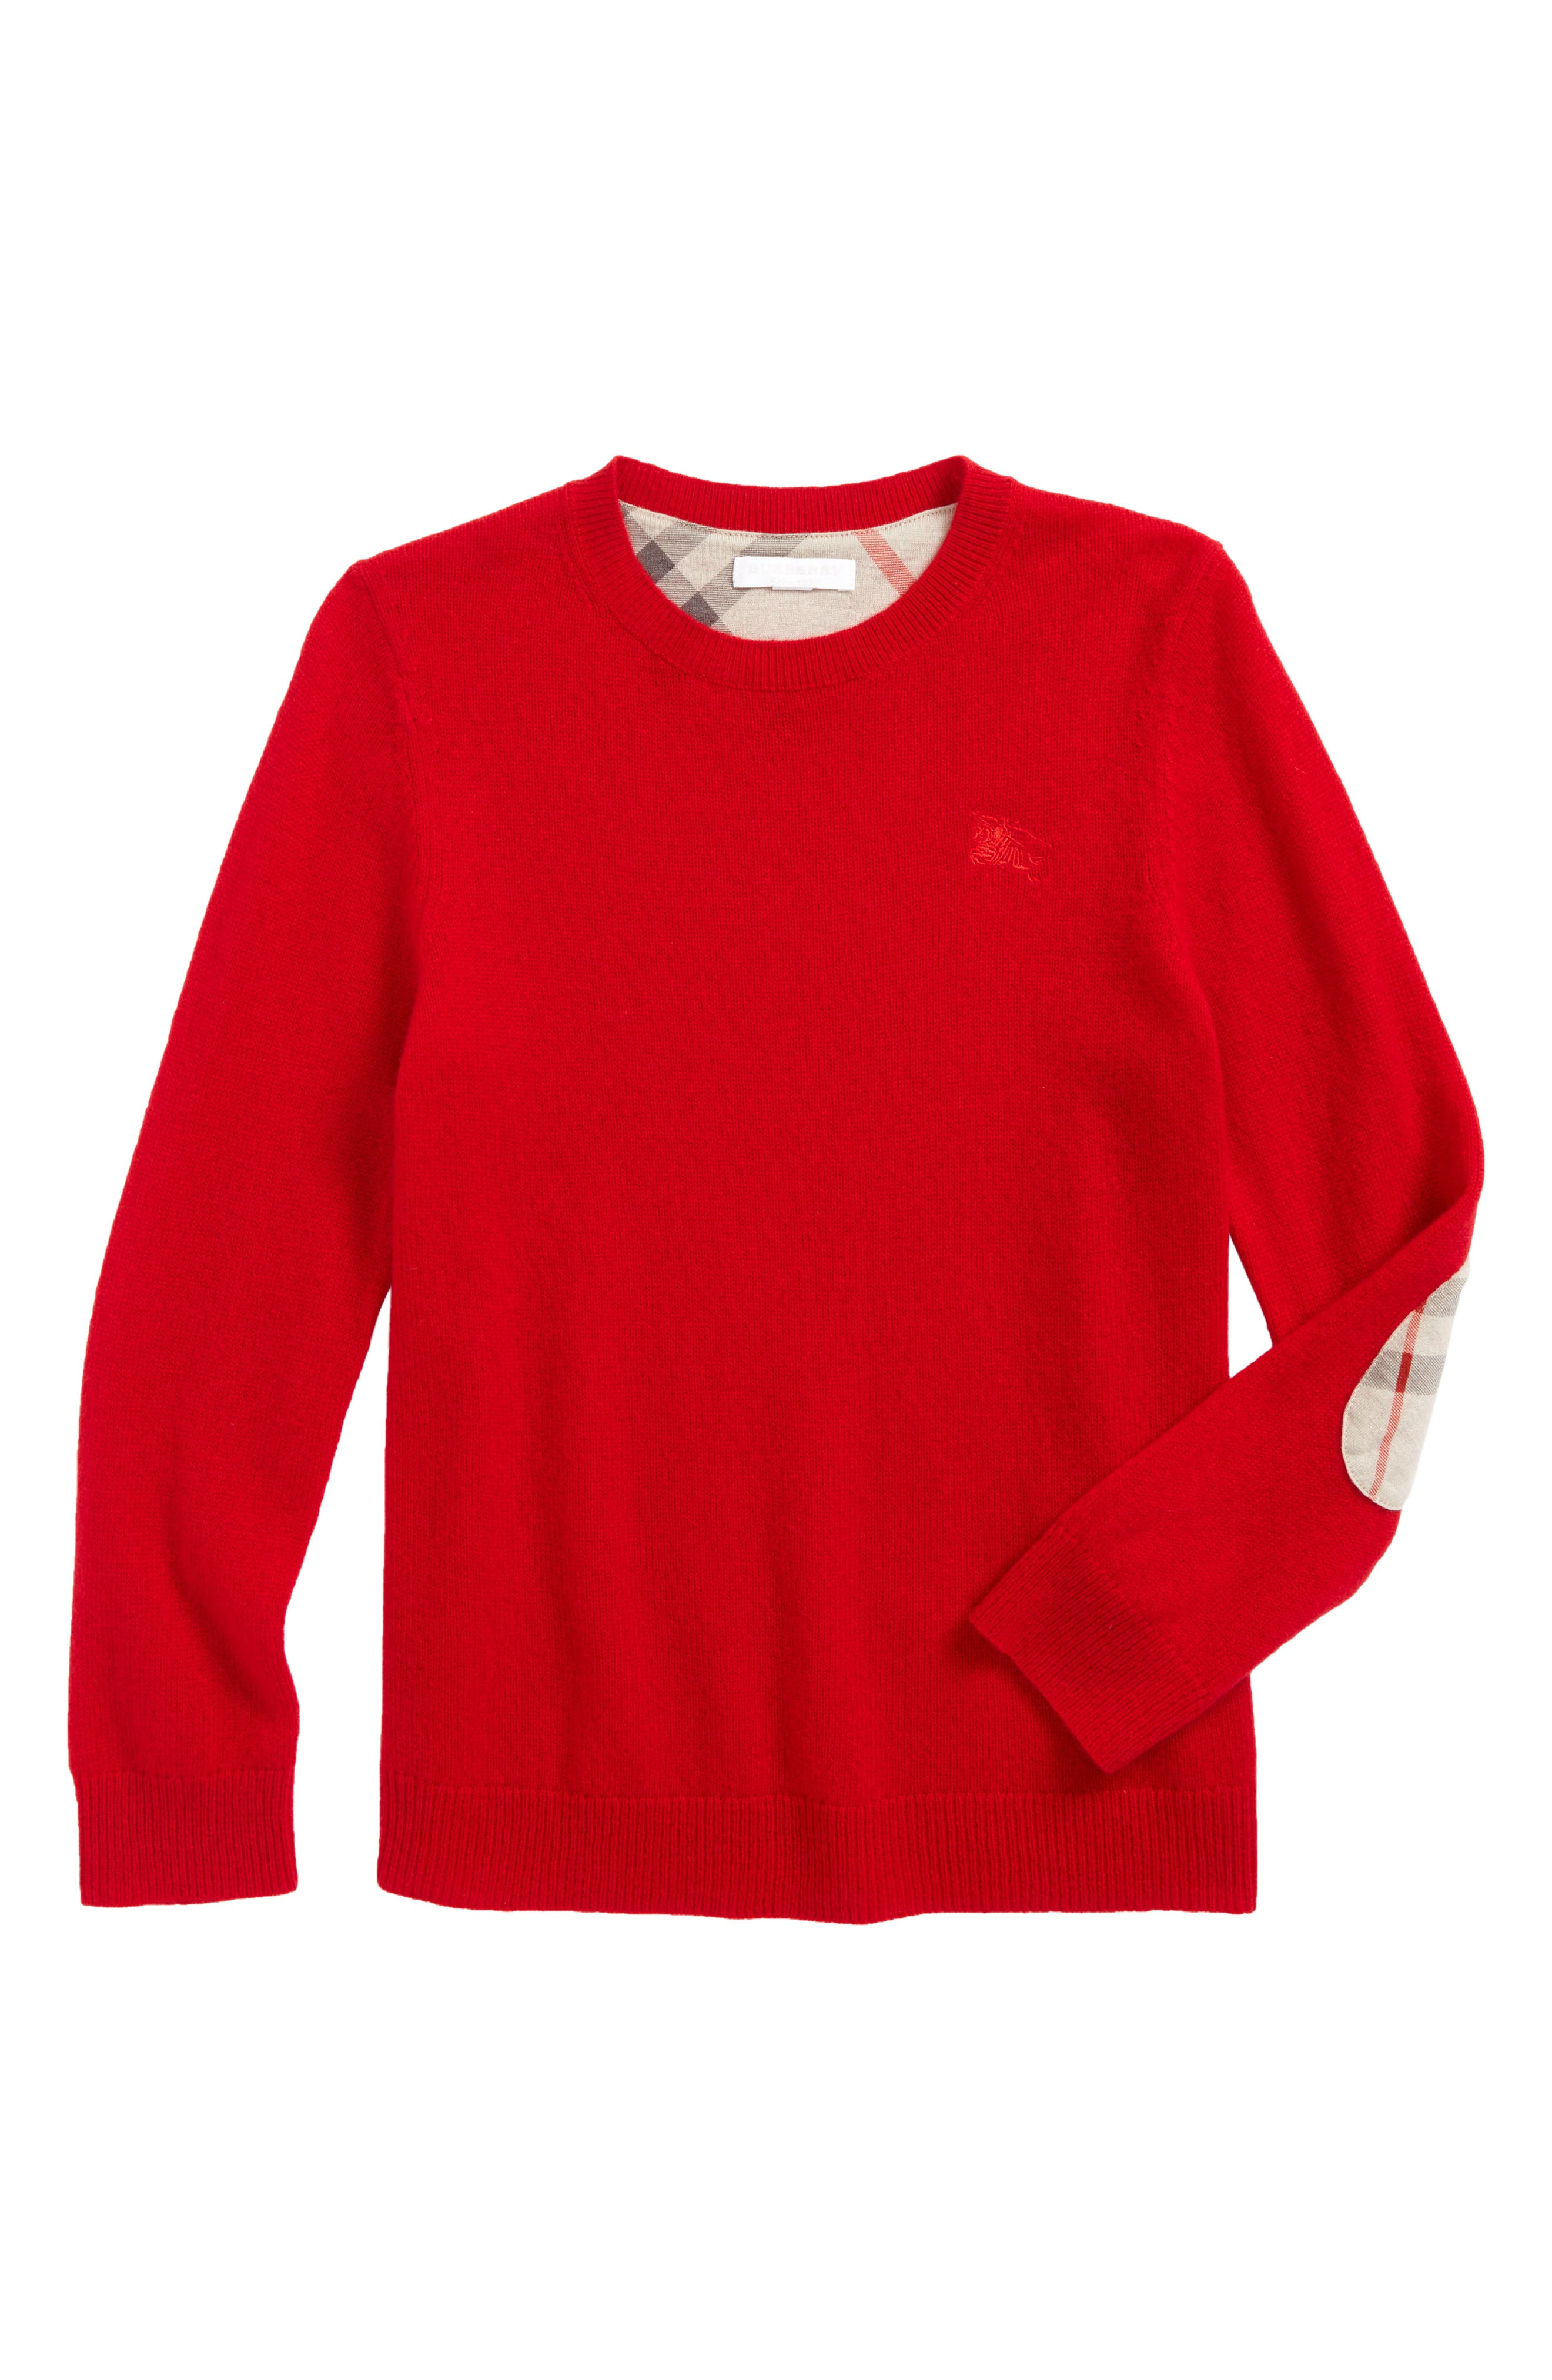 Durham Cashmere Sweater,                             Main thumbnail 1, color,                             Parade Red